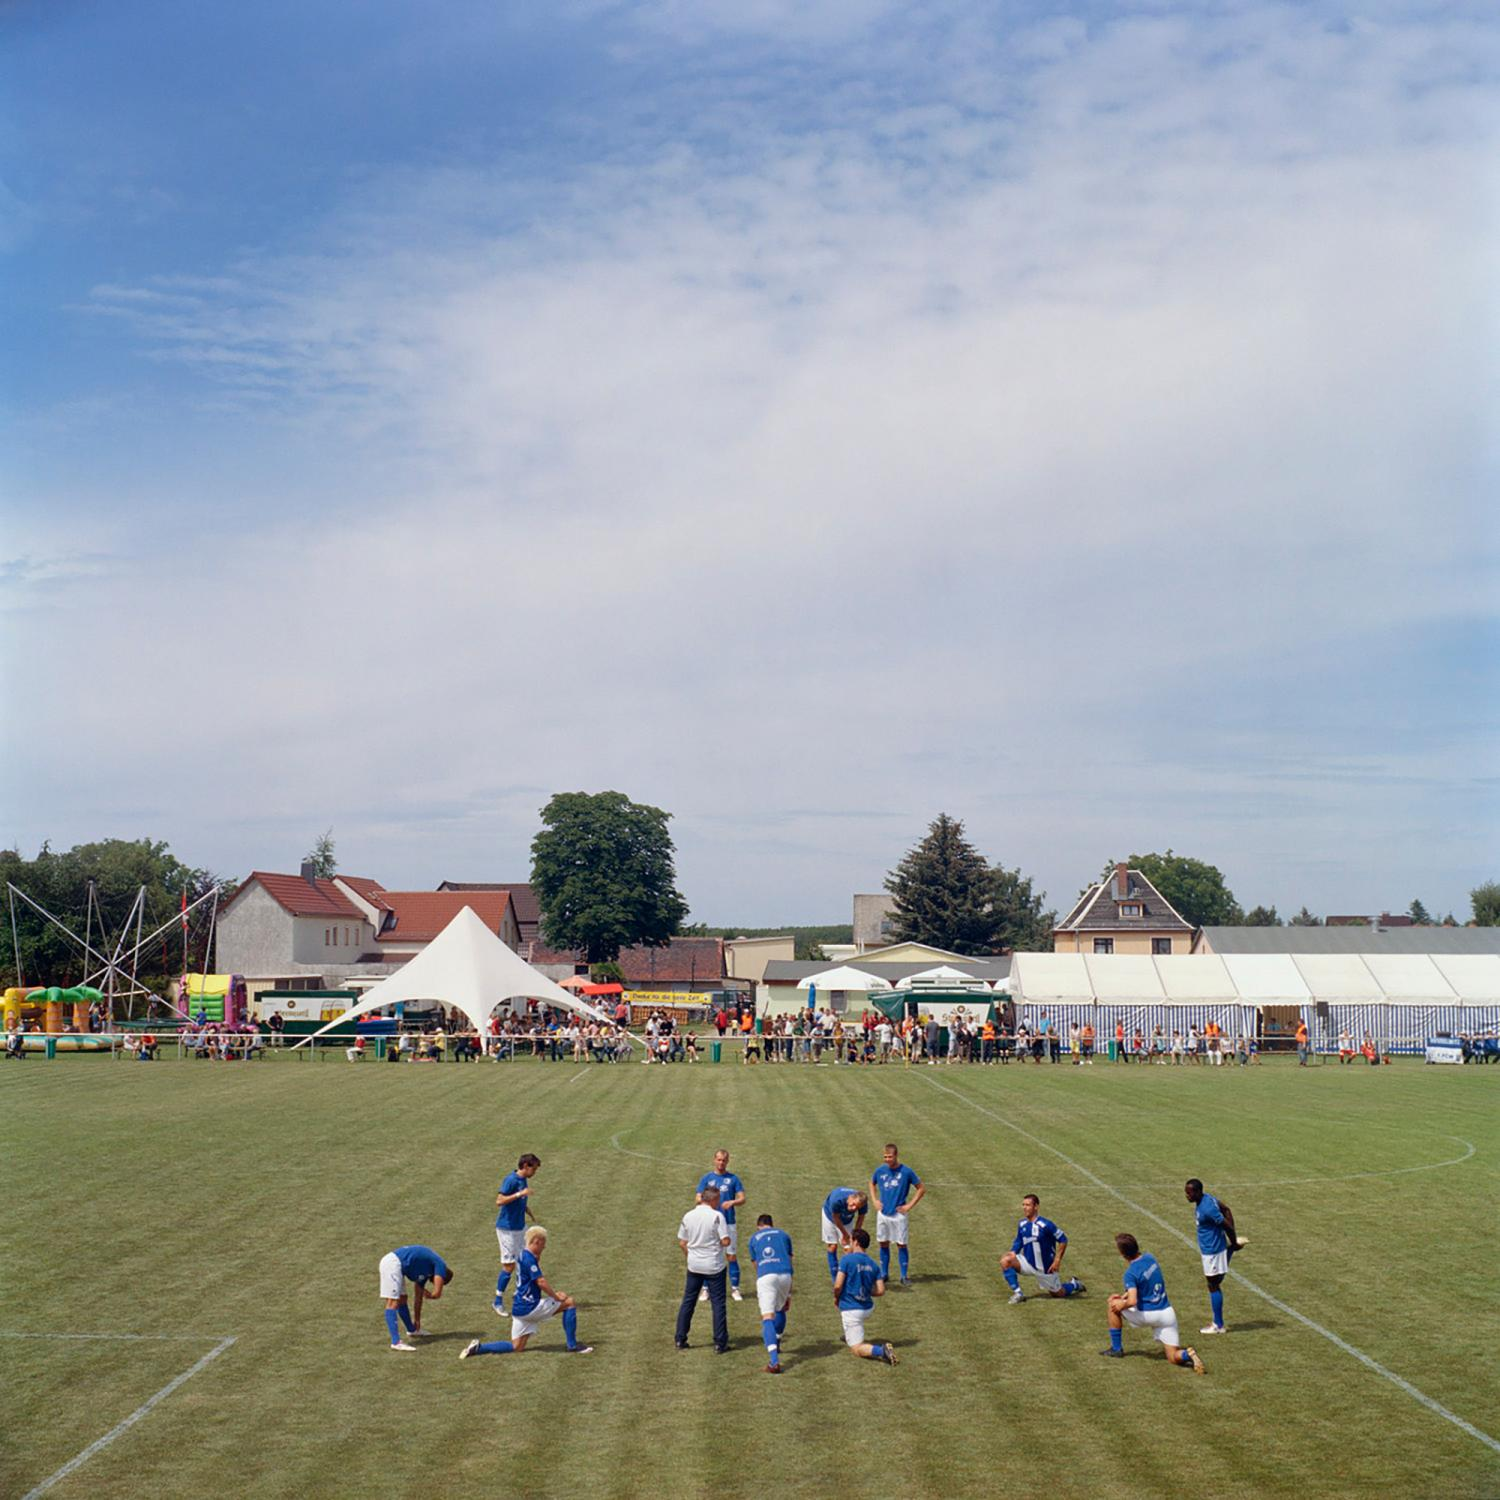 The team warms up for the last friendly game of the season in Höhenmöseln, where afterwards a village fest will take place.